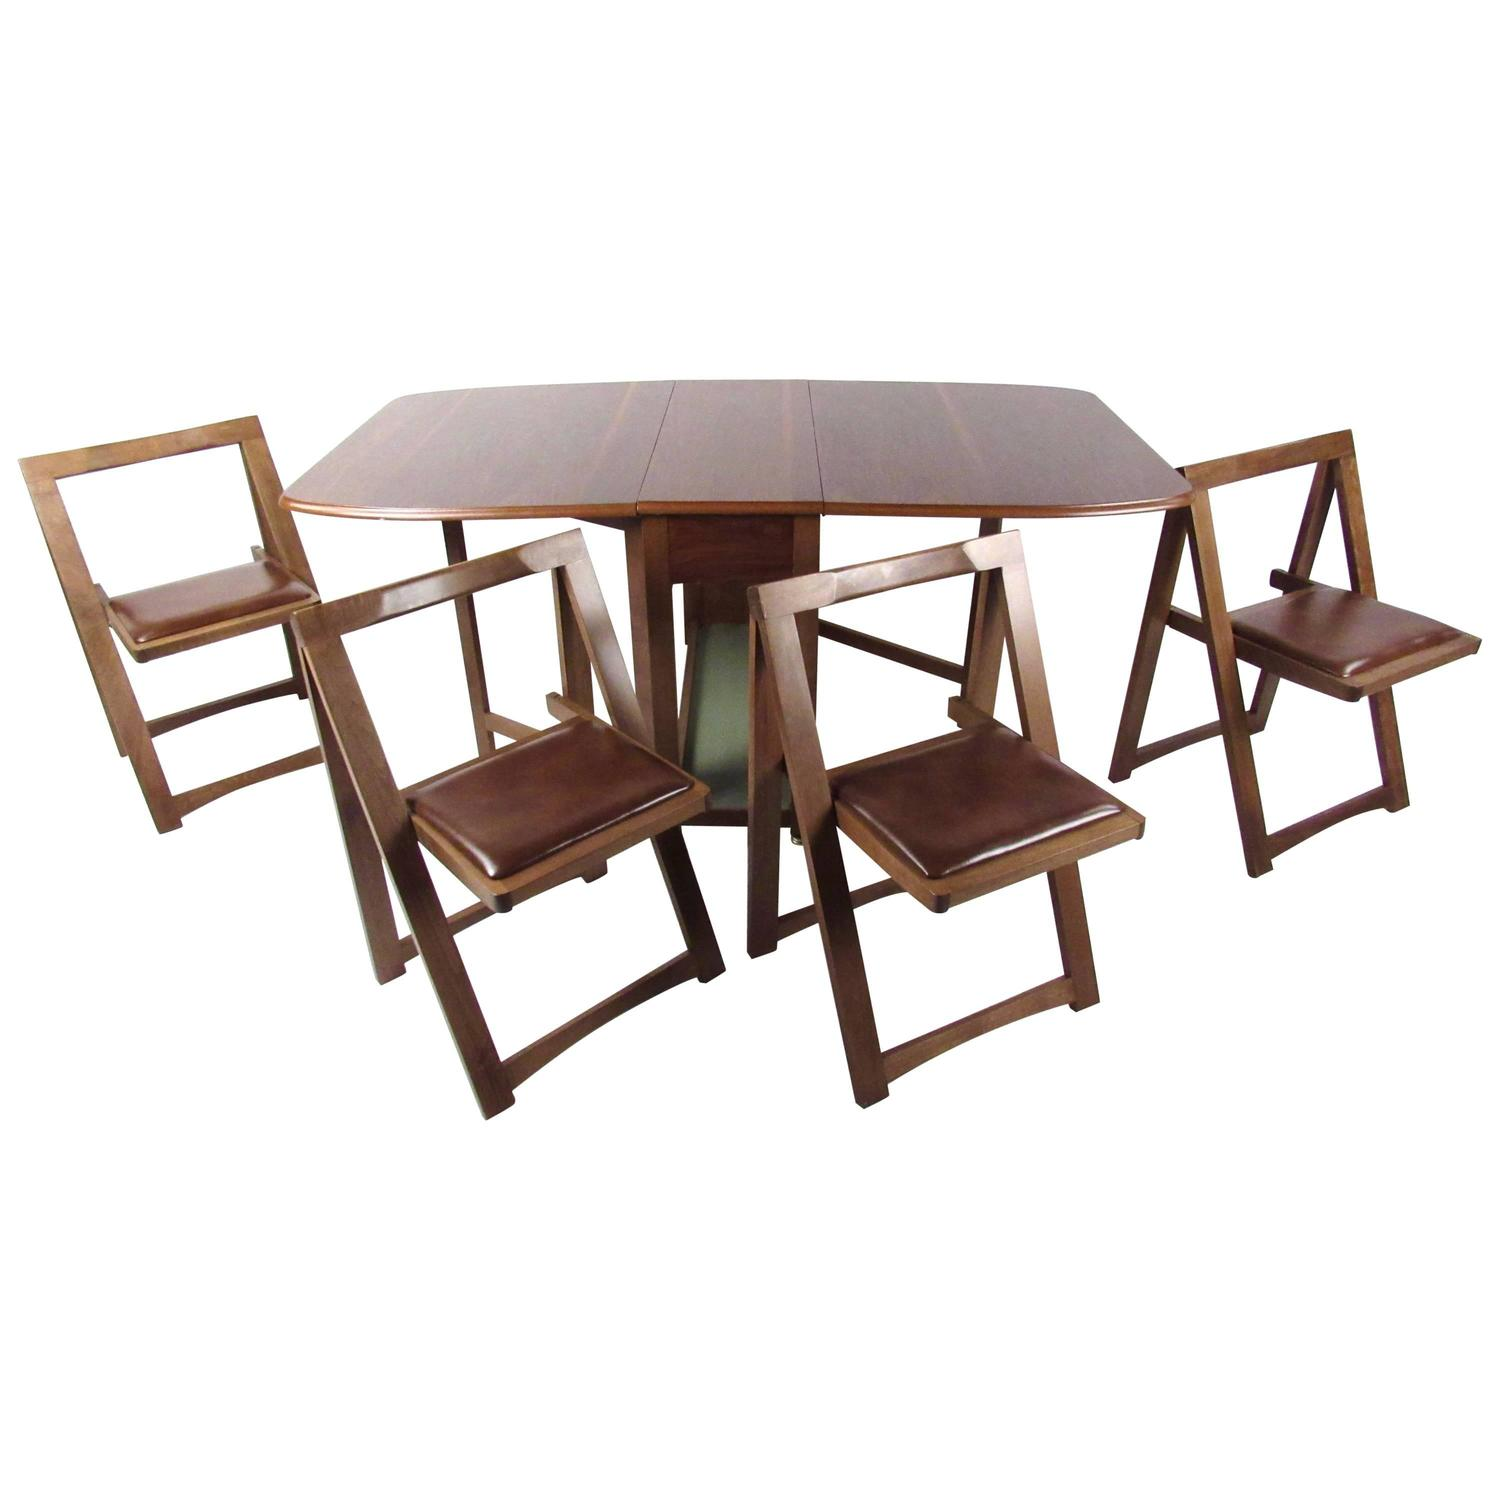 Drop Leaf Table With Chairs Mid Century Modern Rolling Drop Leaf Table With Chairs For